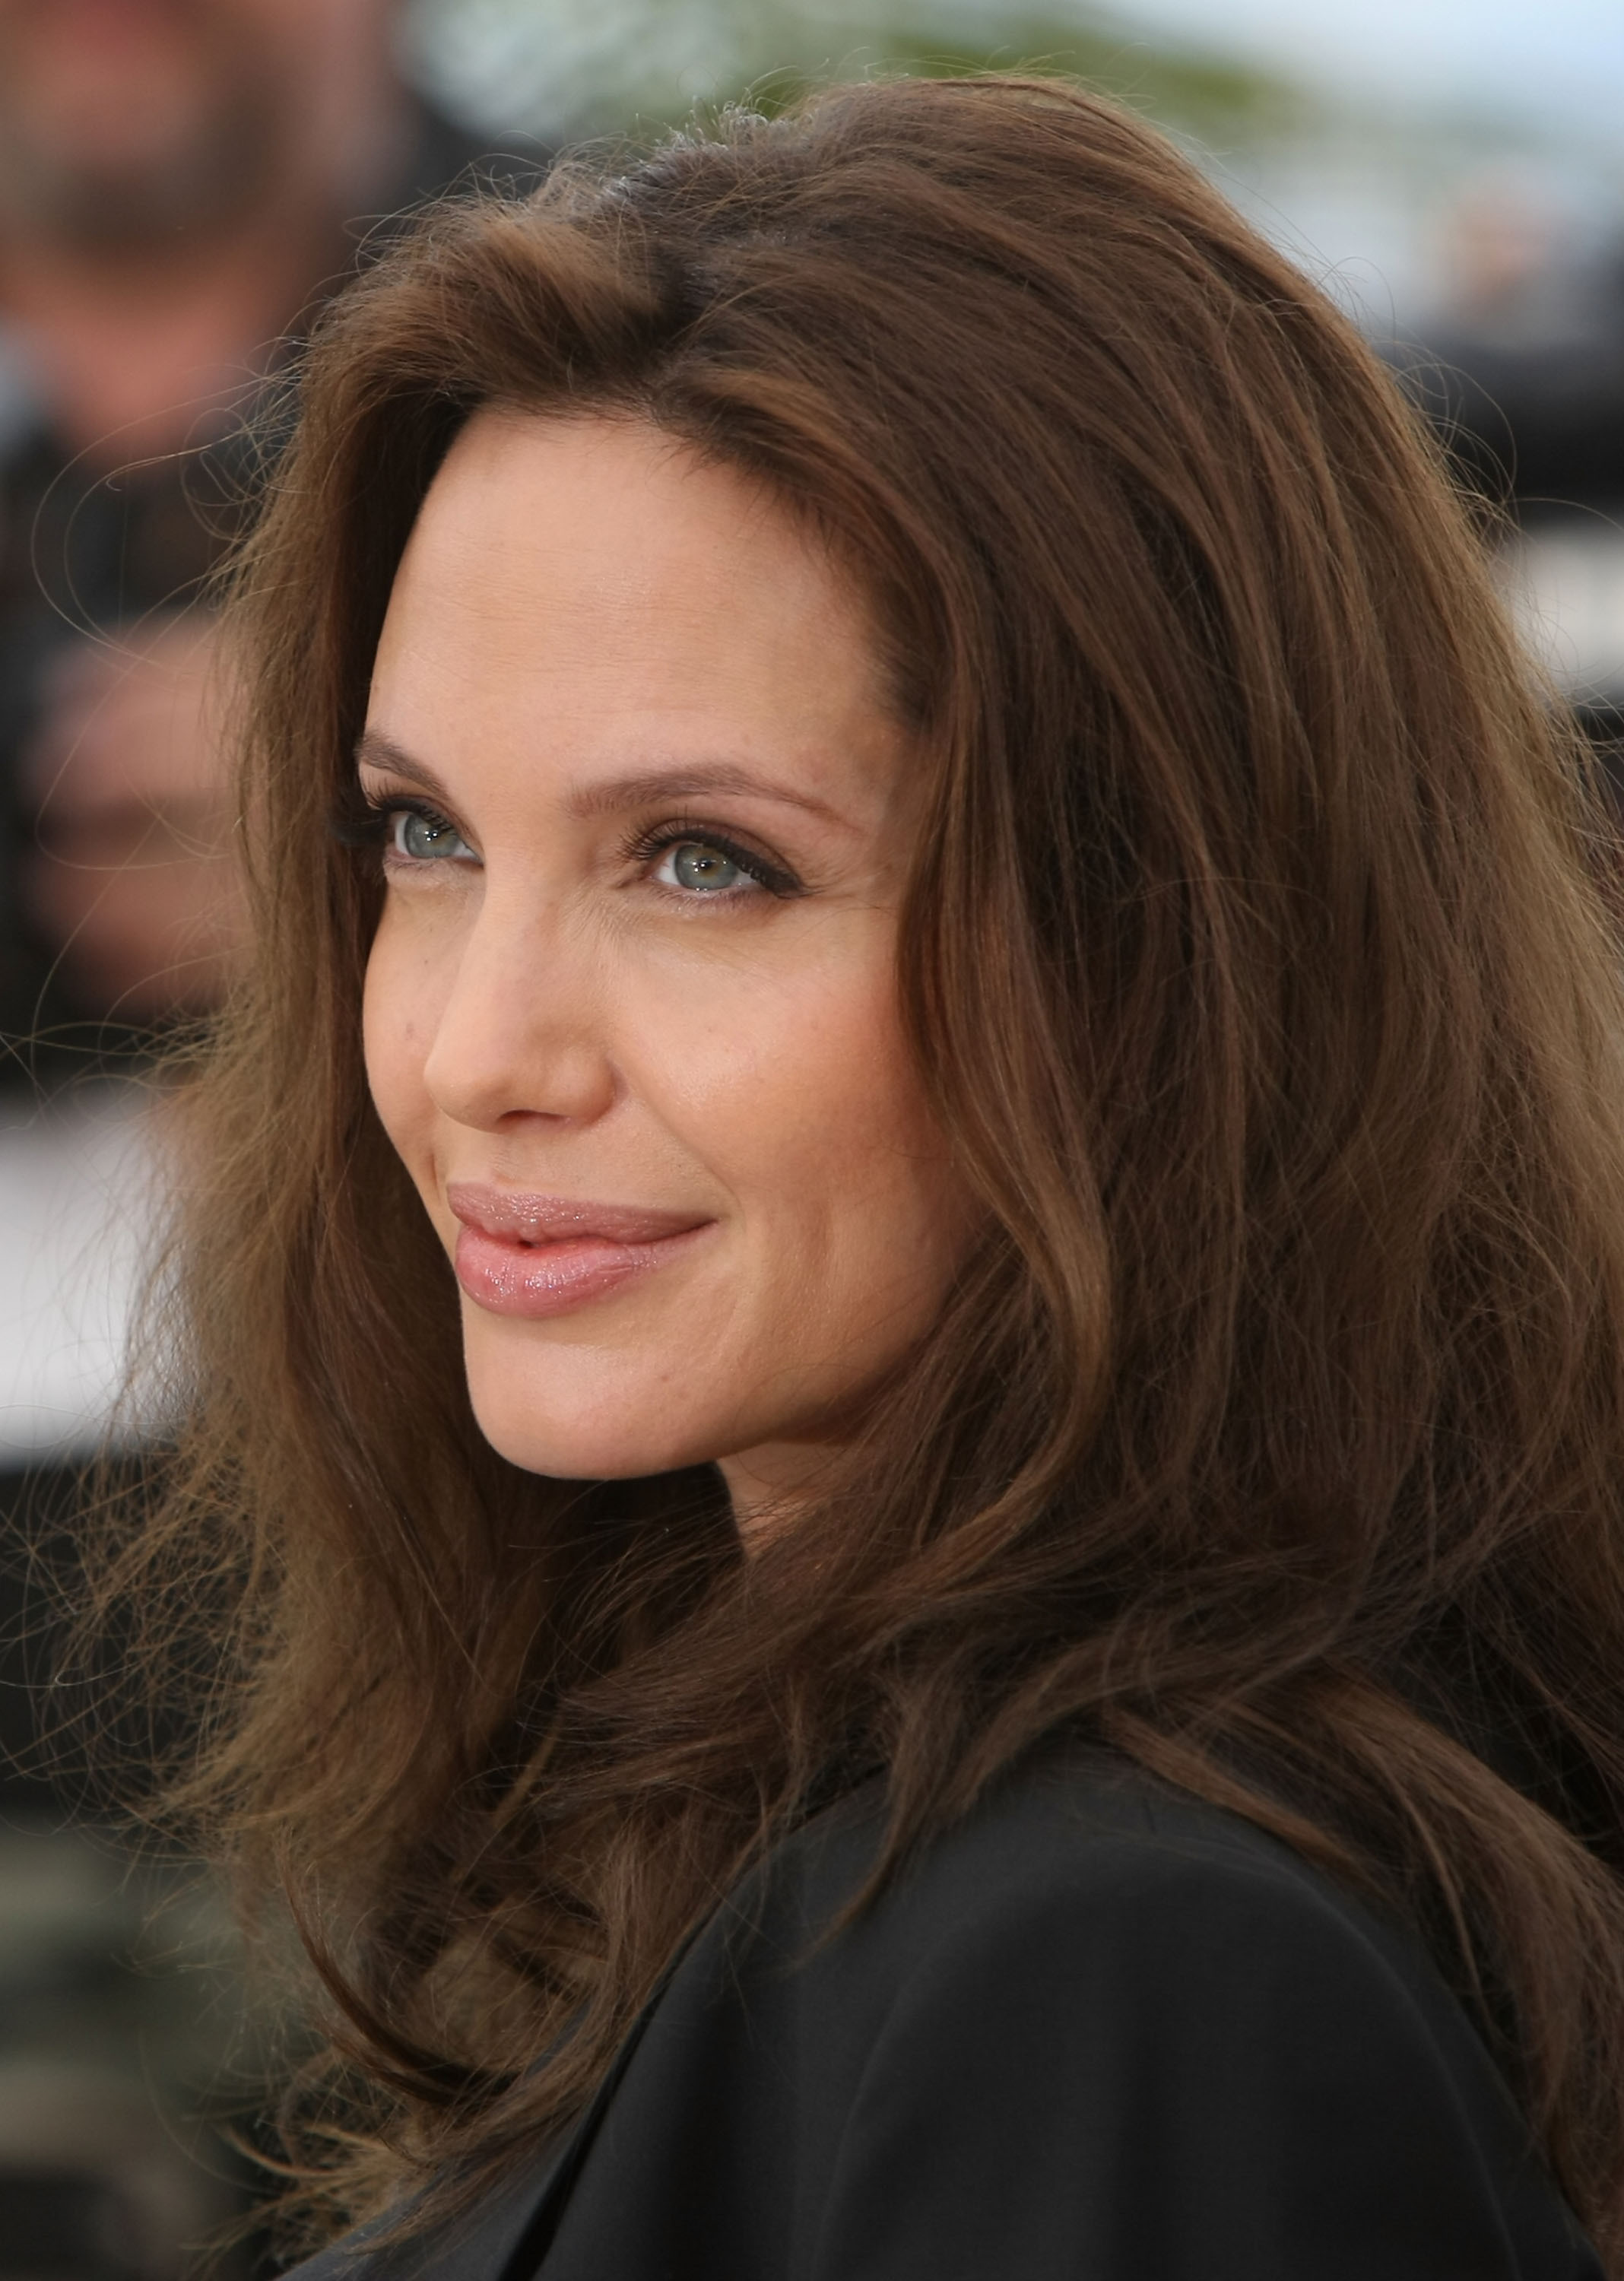 Angelina Jolie Wallpaper HD Wallpapers Download Free Images Wallpaper [1000image.com]